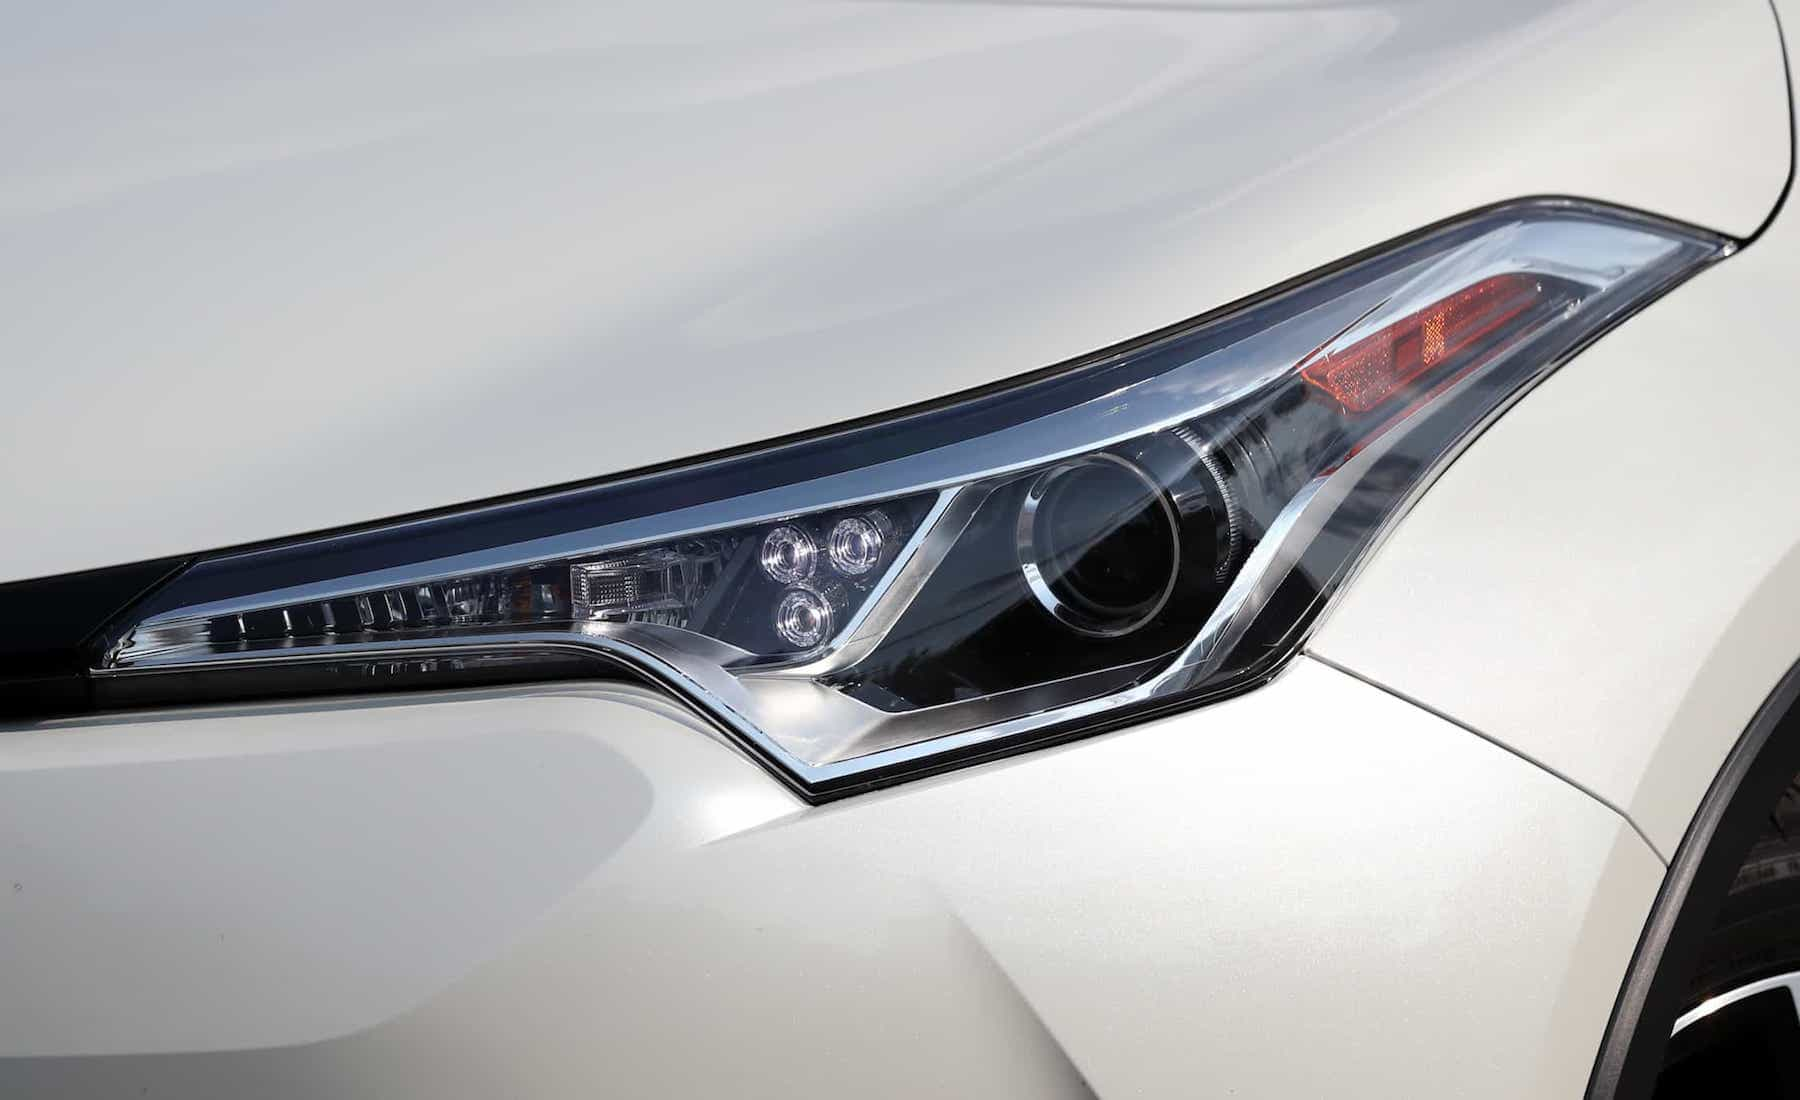 2018 Toyota C HR XLE Premium Exterior View Headlight (Photo 10 of 52)